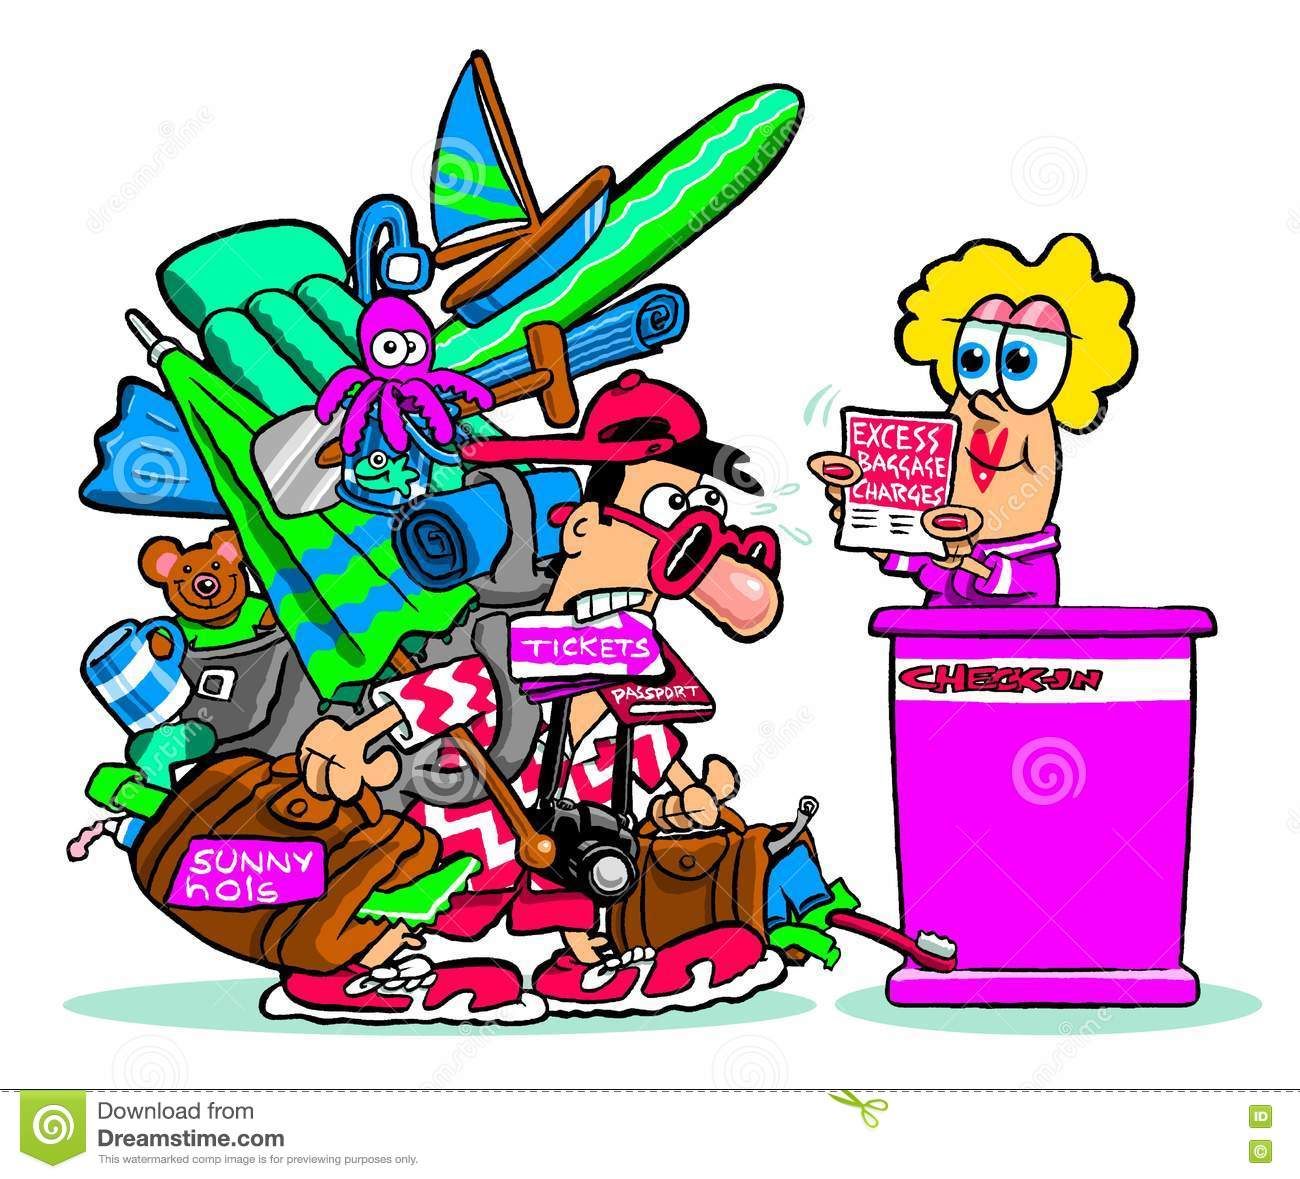 Cartoon Traveler With Excess Baggage Stock Photo.